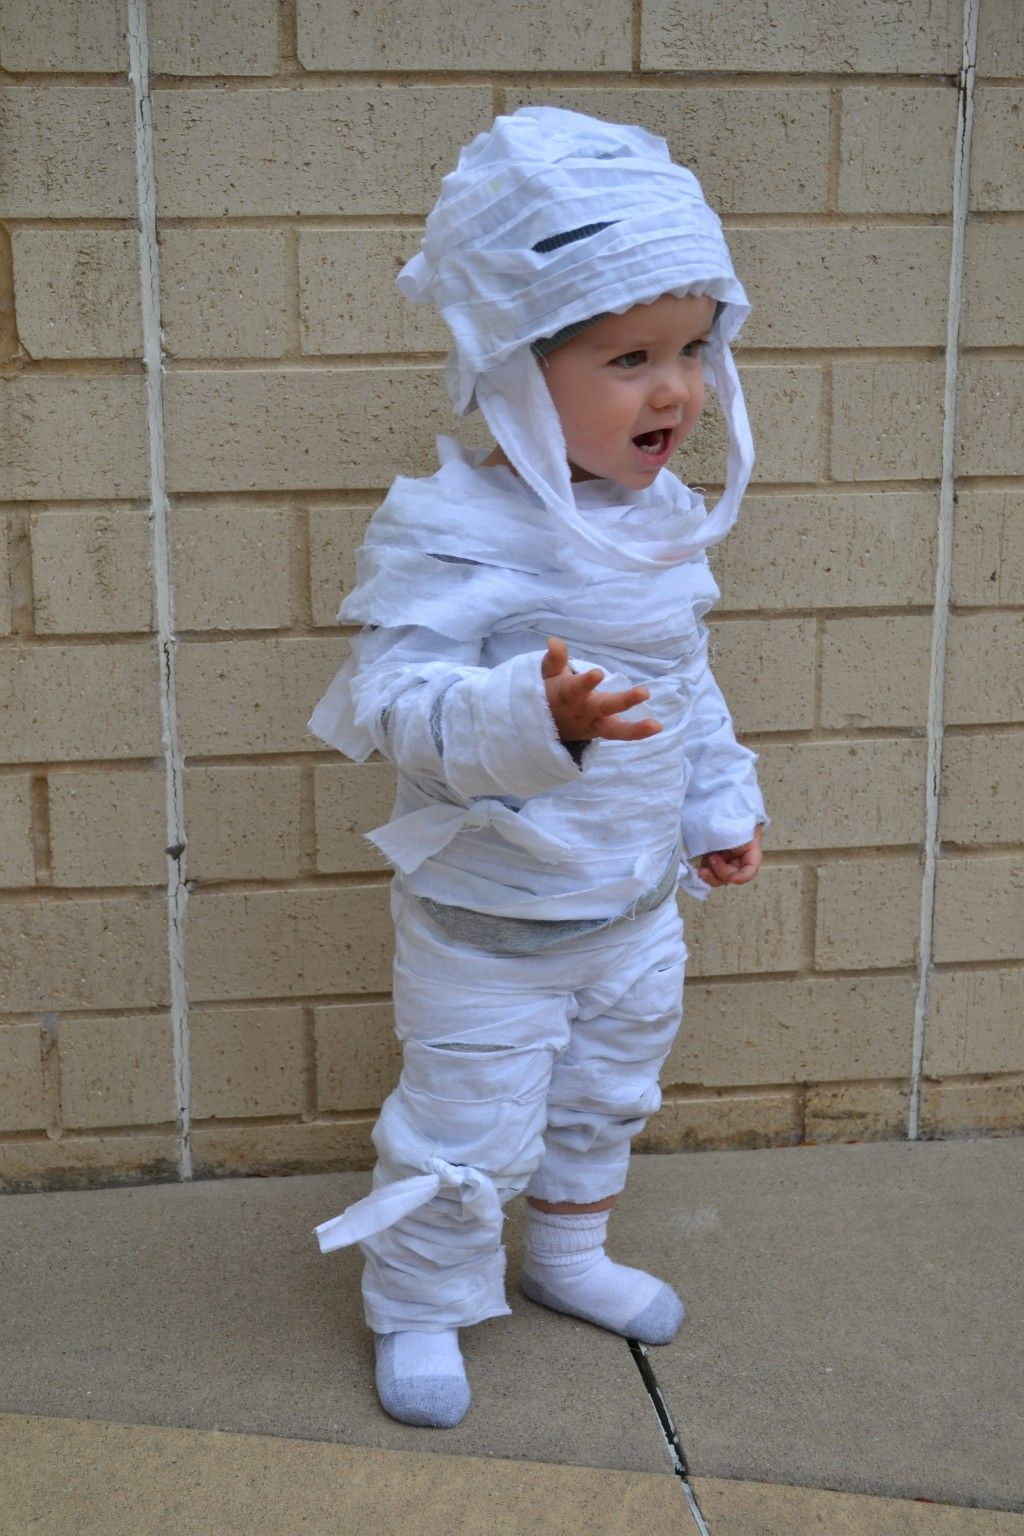 How To Make An Easy, NoSew, Child's Mummy Costume Diy